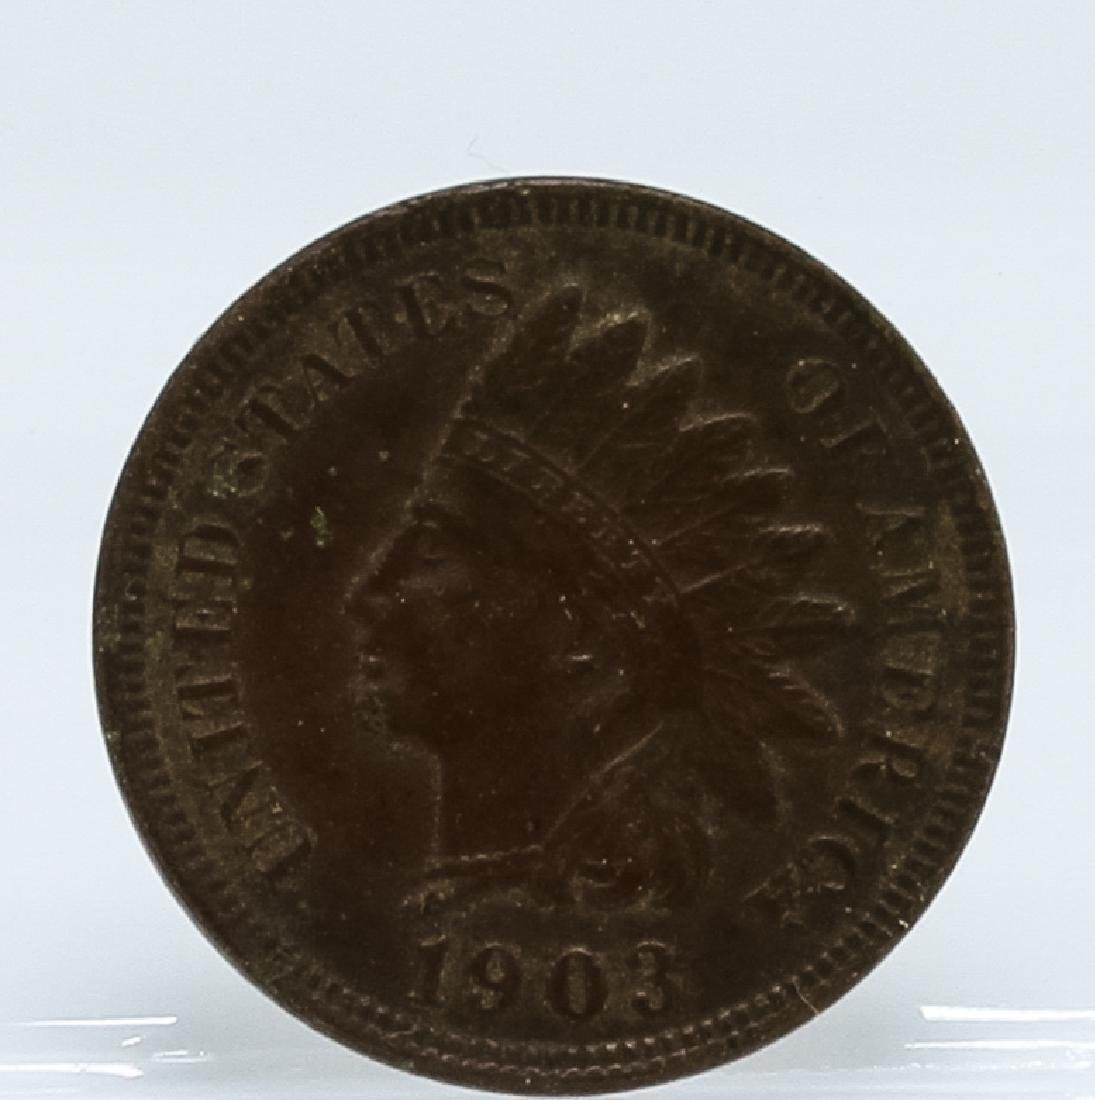 1903 Indian Head One Cent